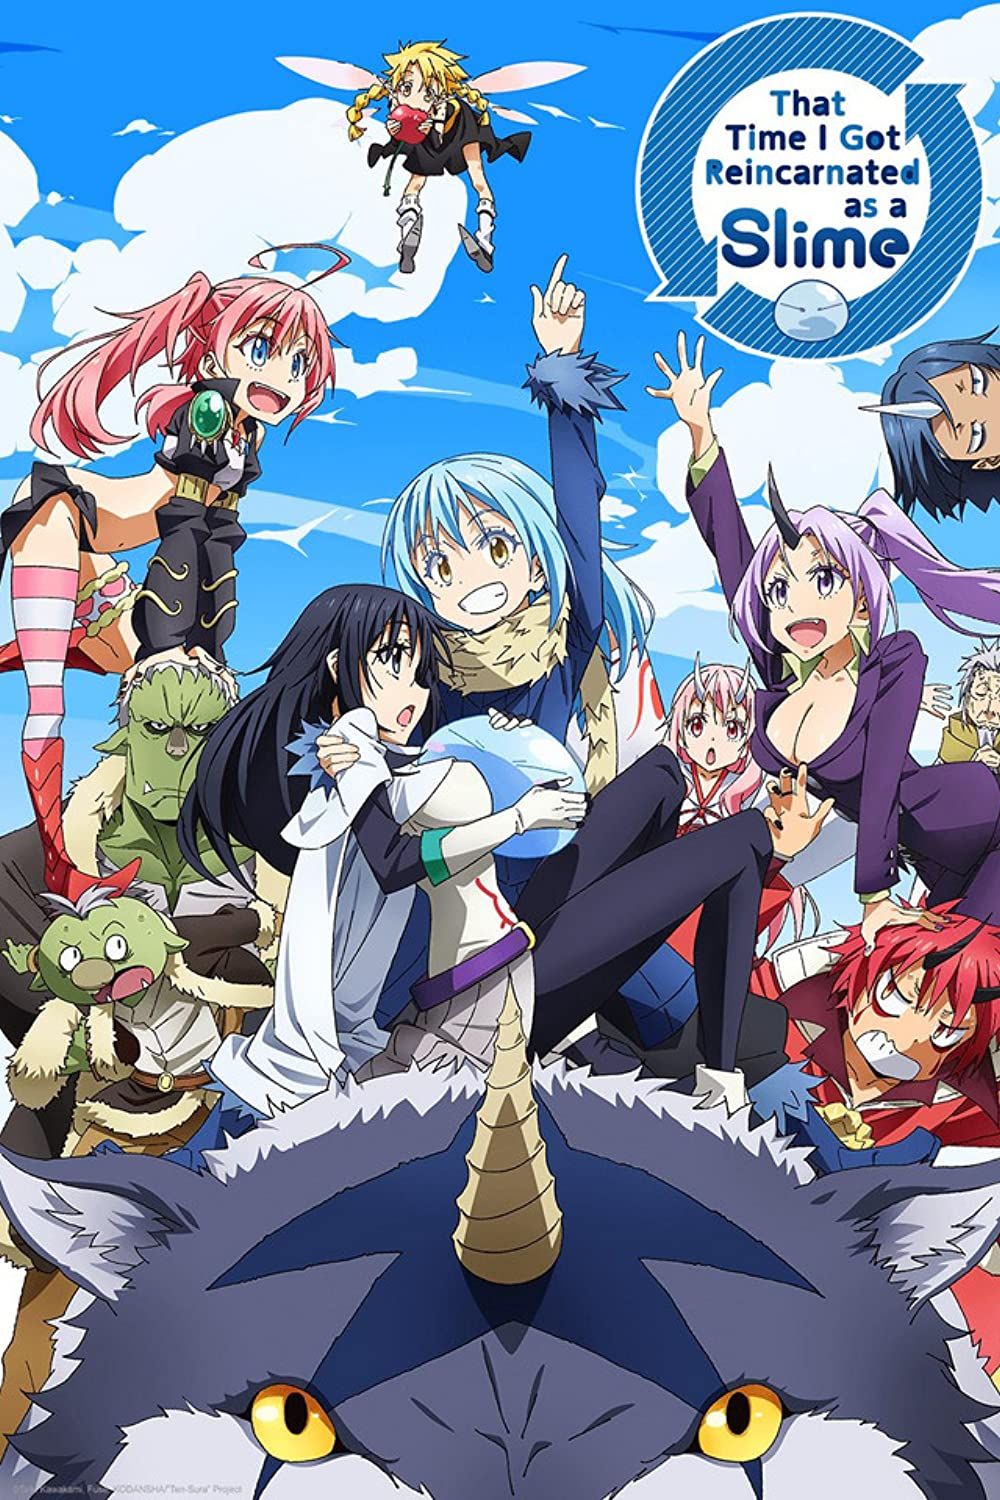 That Time I Got Reincarnated As A Slime Episode 22